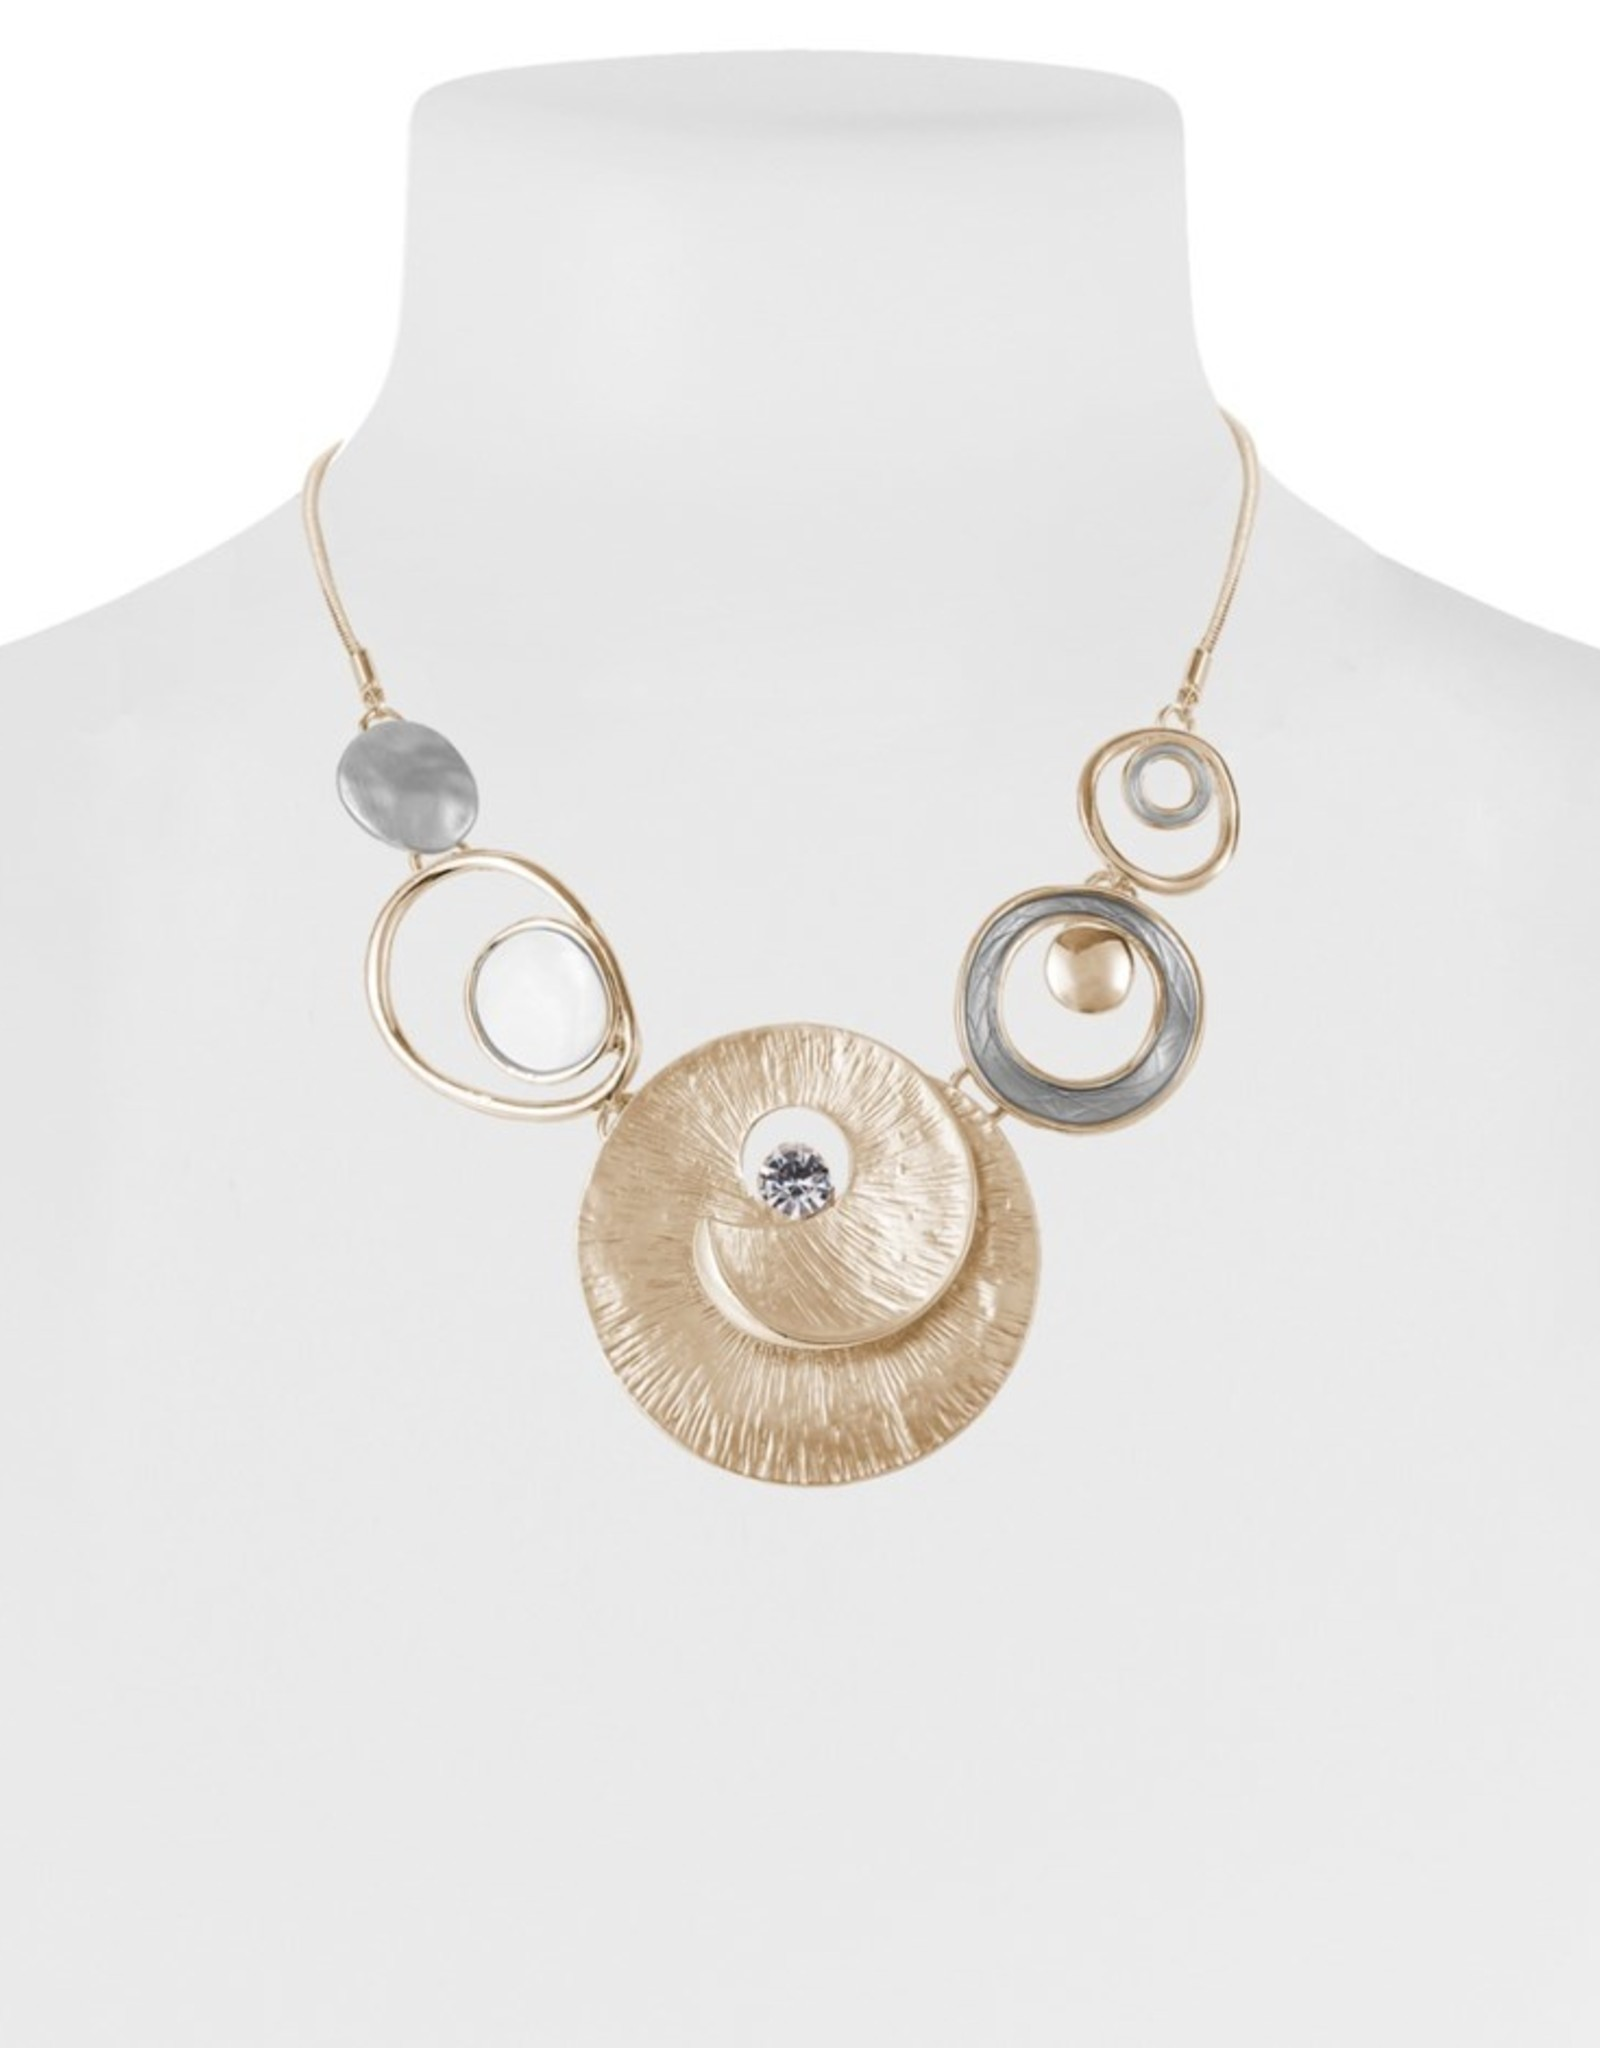 Gold & Silver Shell Necklace